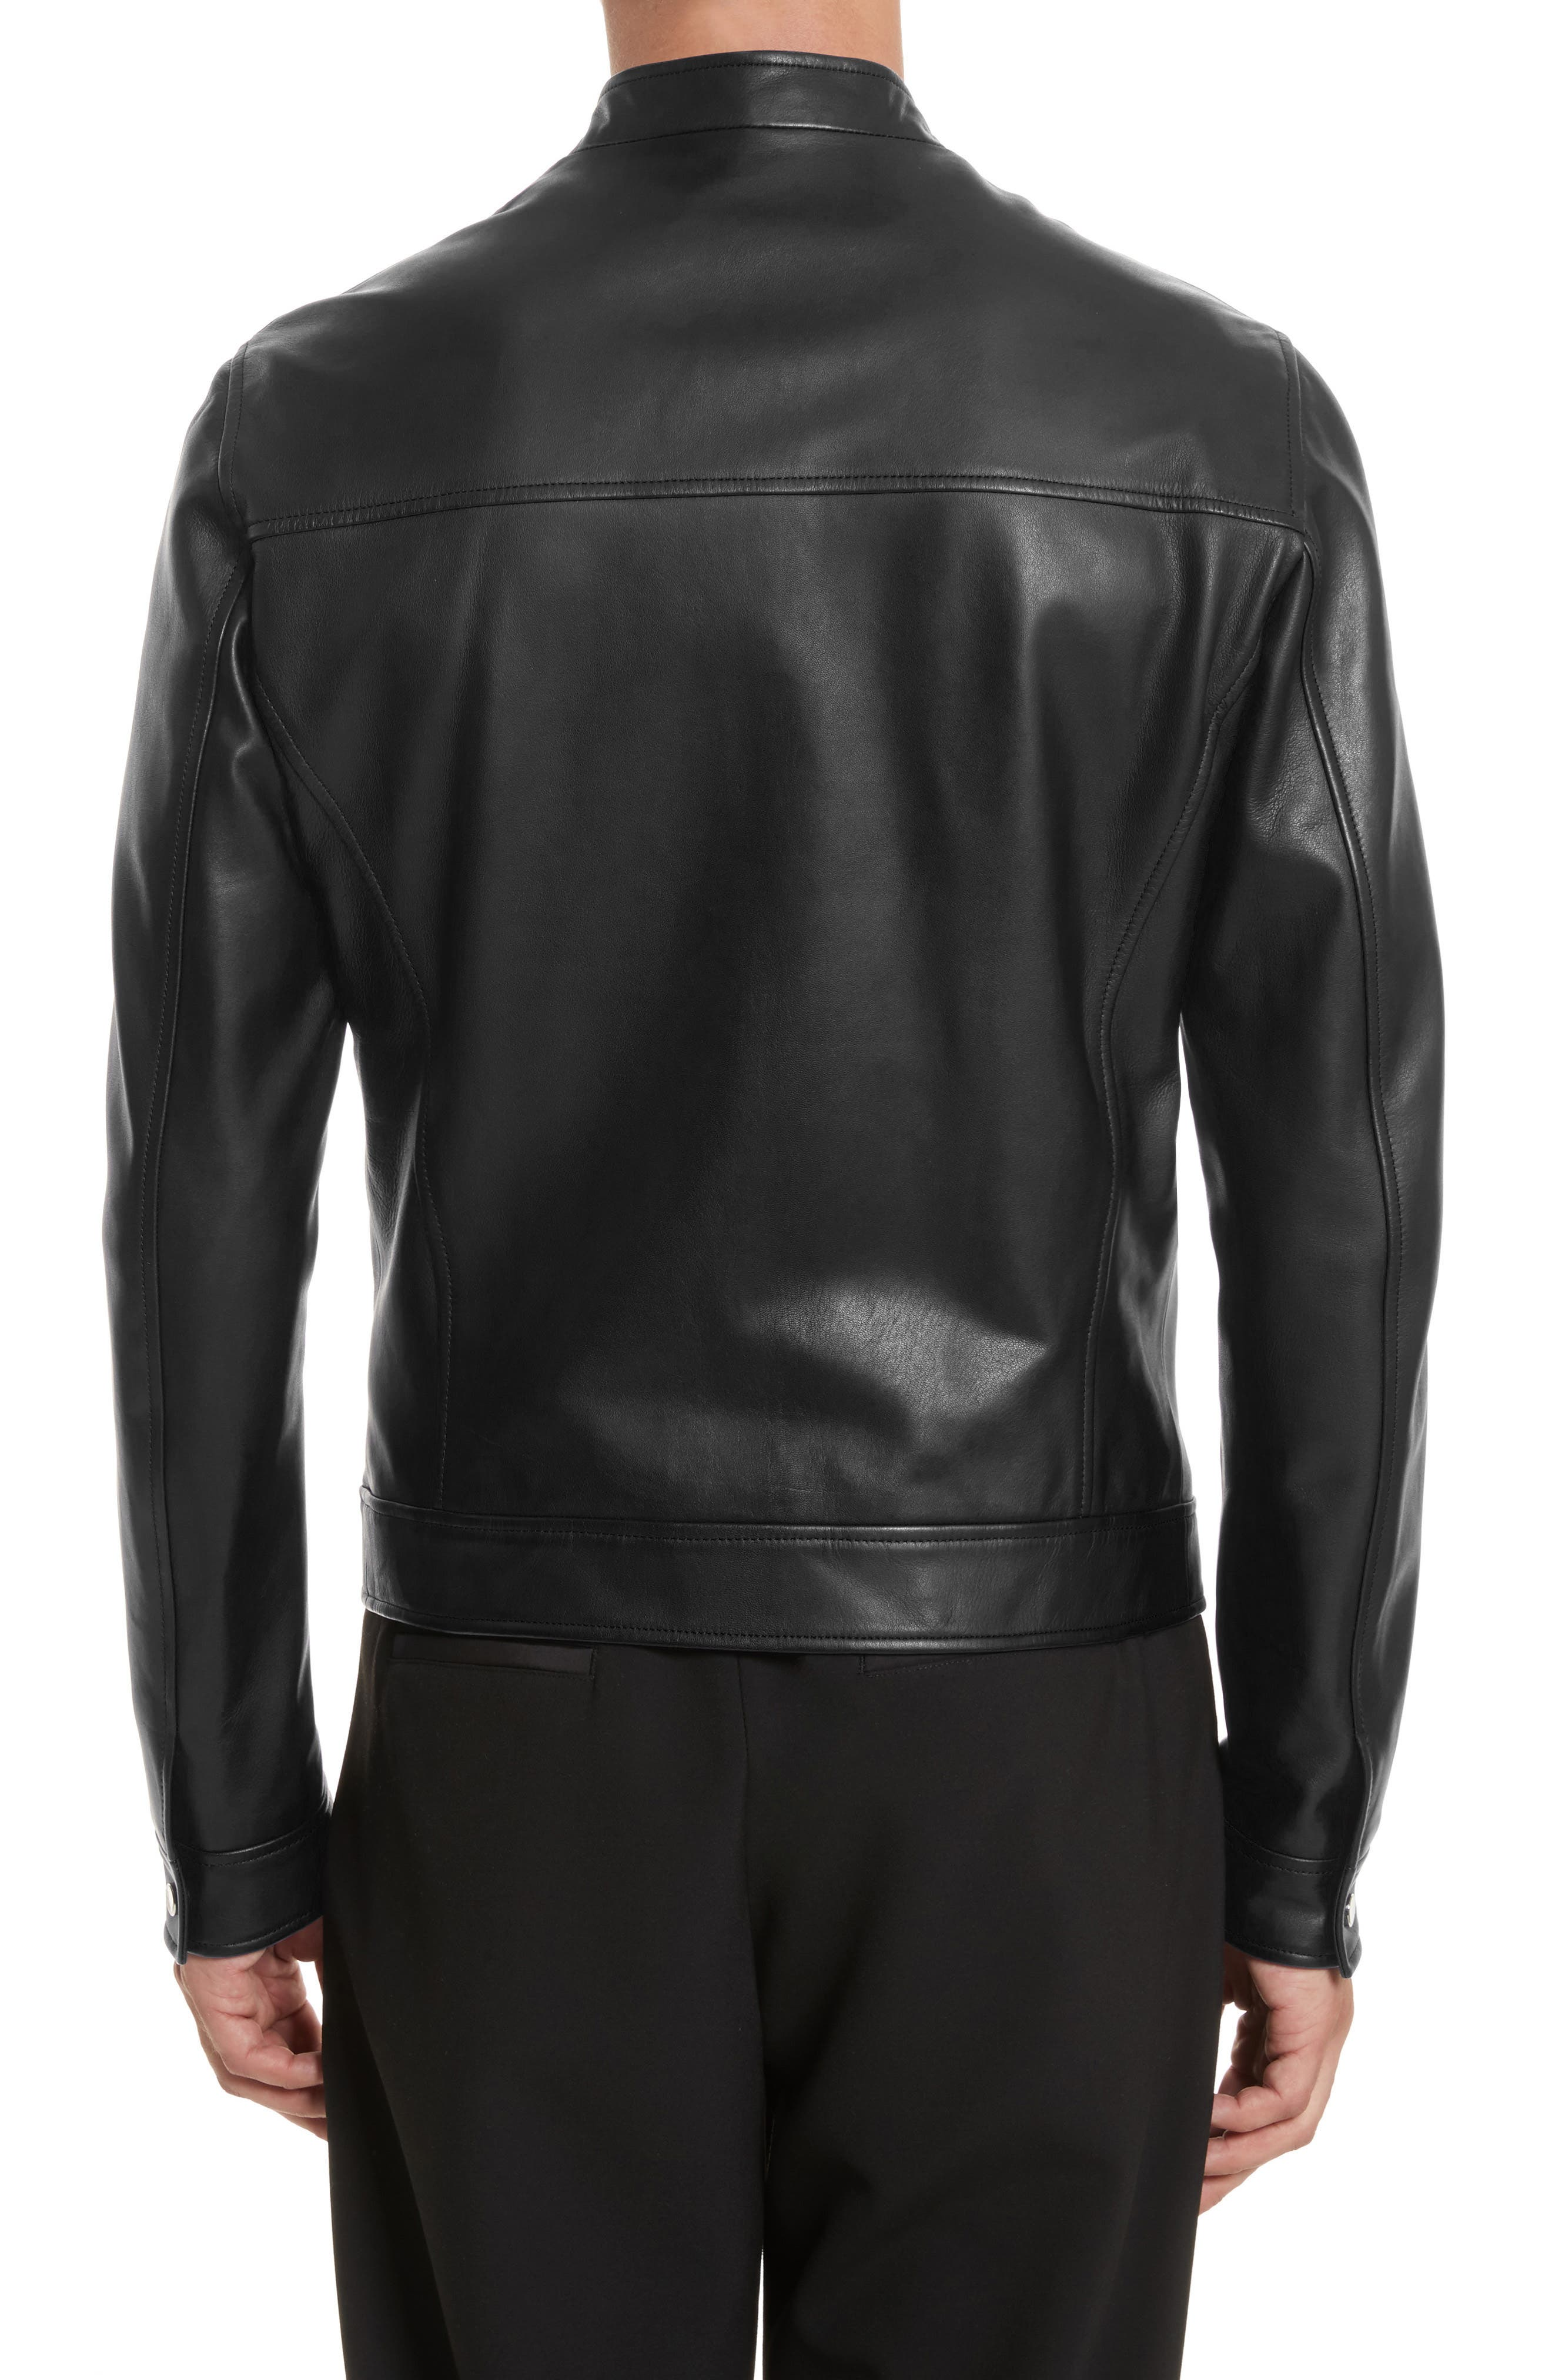 VERSACE COLLECTION, Café Racer Leather Jacket, Alternate thumbnail 2, color, 130